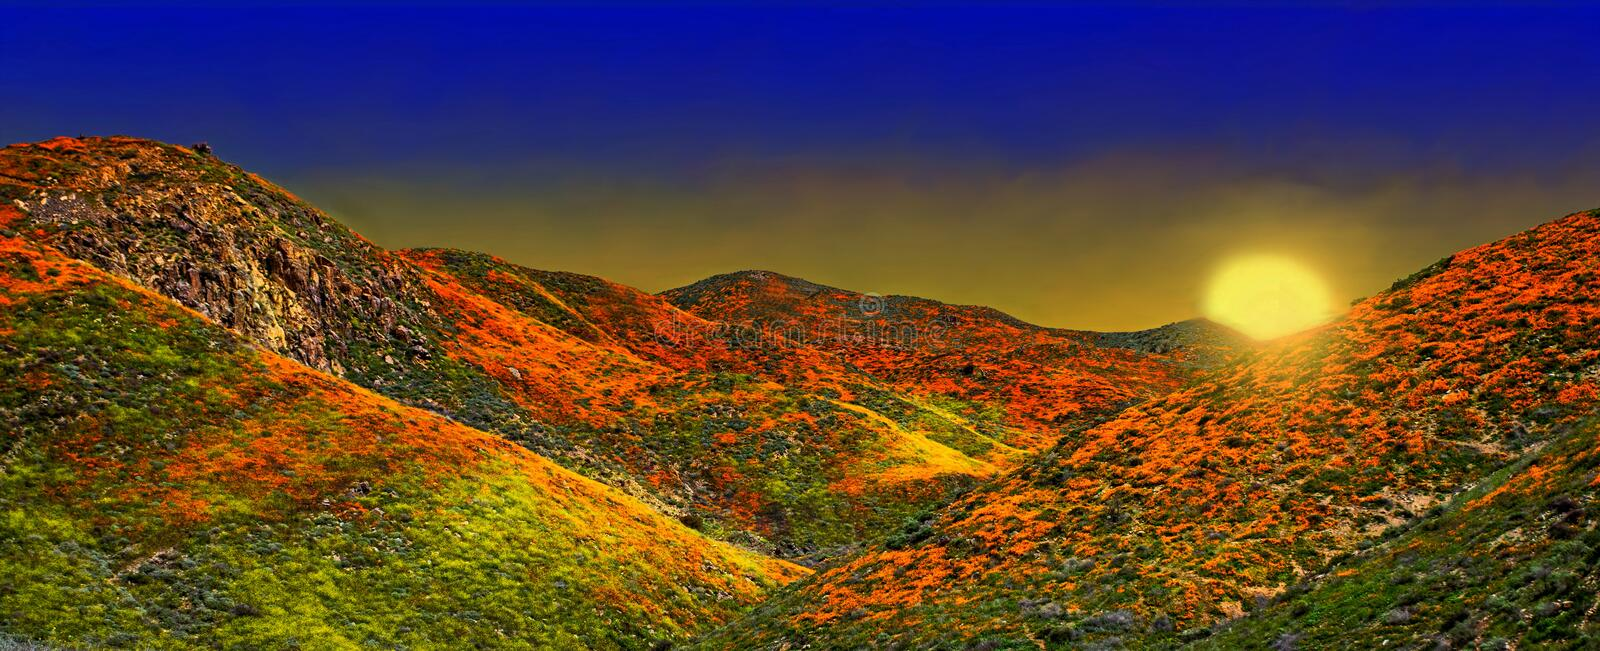 California Poppy fields landscape, sun creasting on the horizen casting a gloden glow over colorful hills and valleys. royalty free stock photography